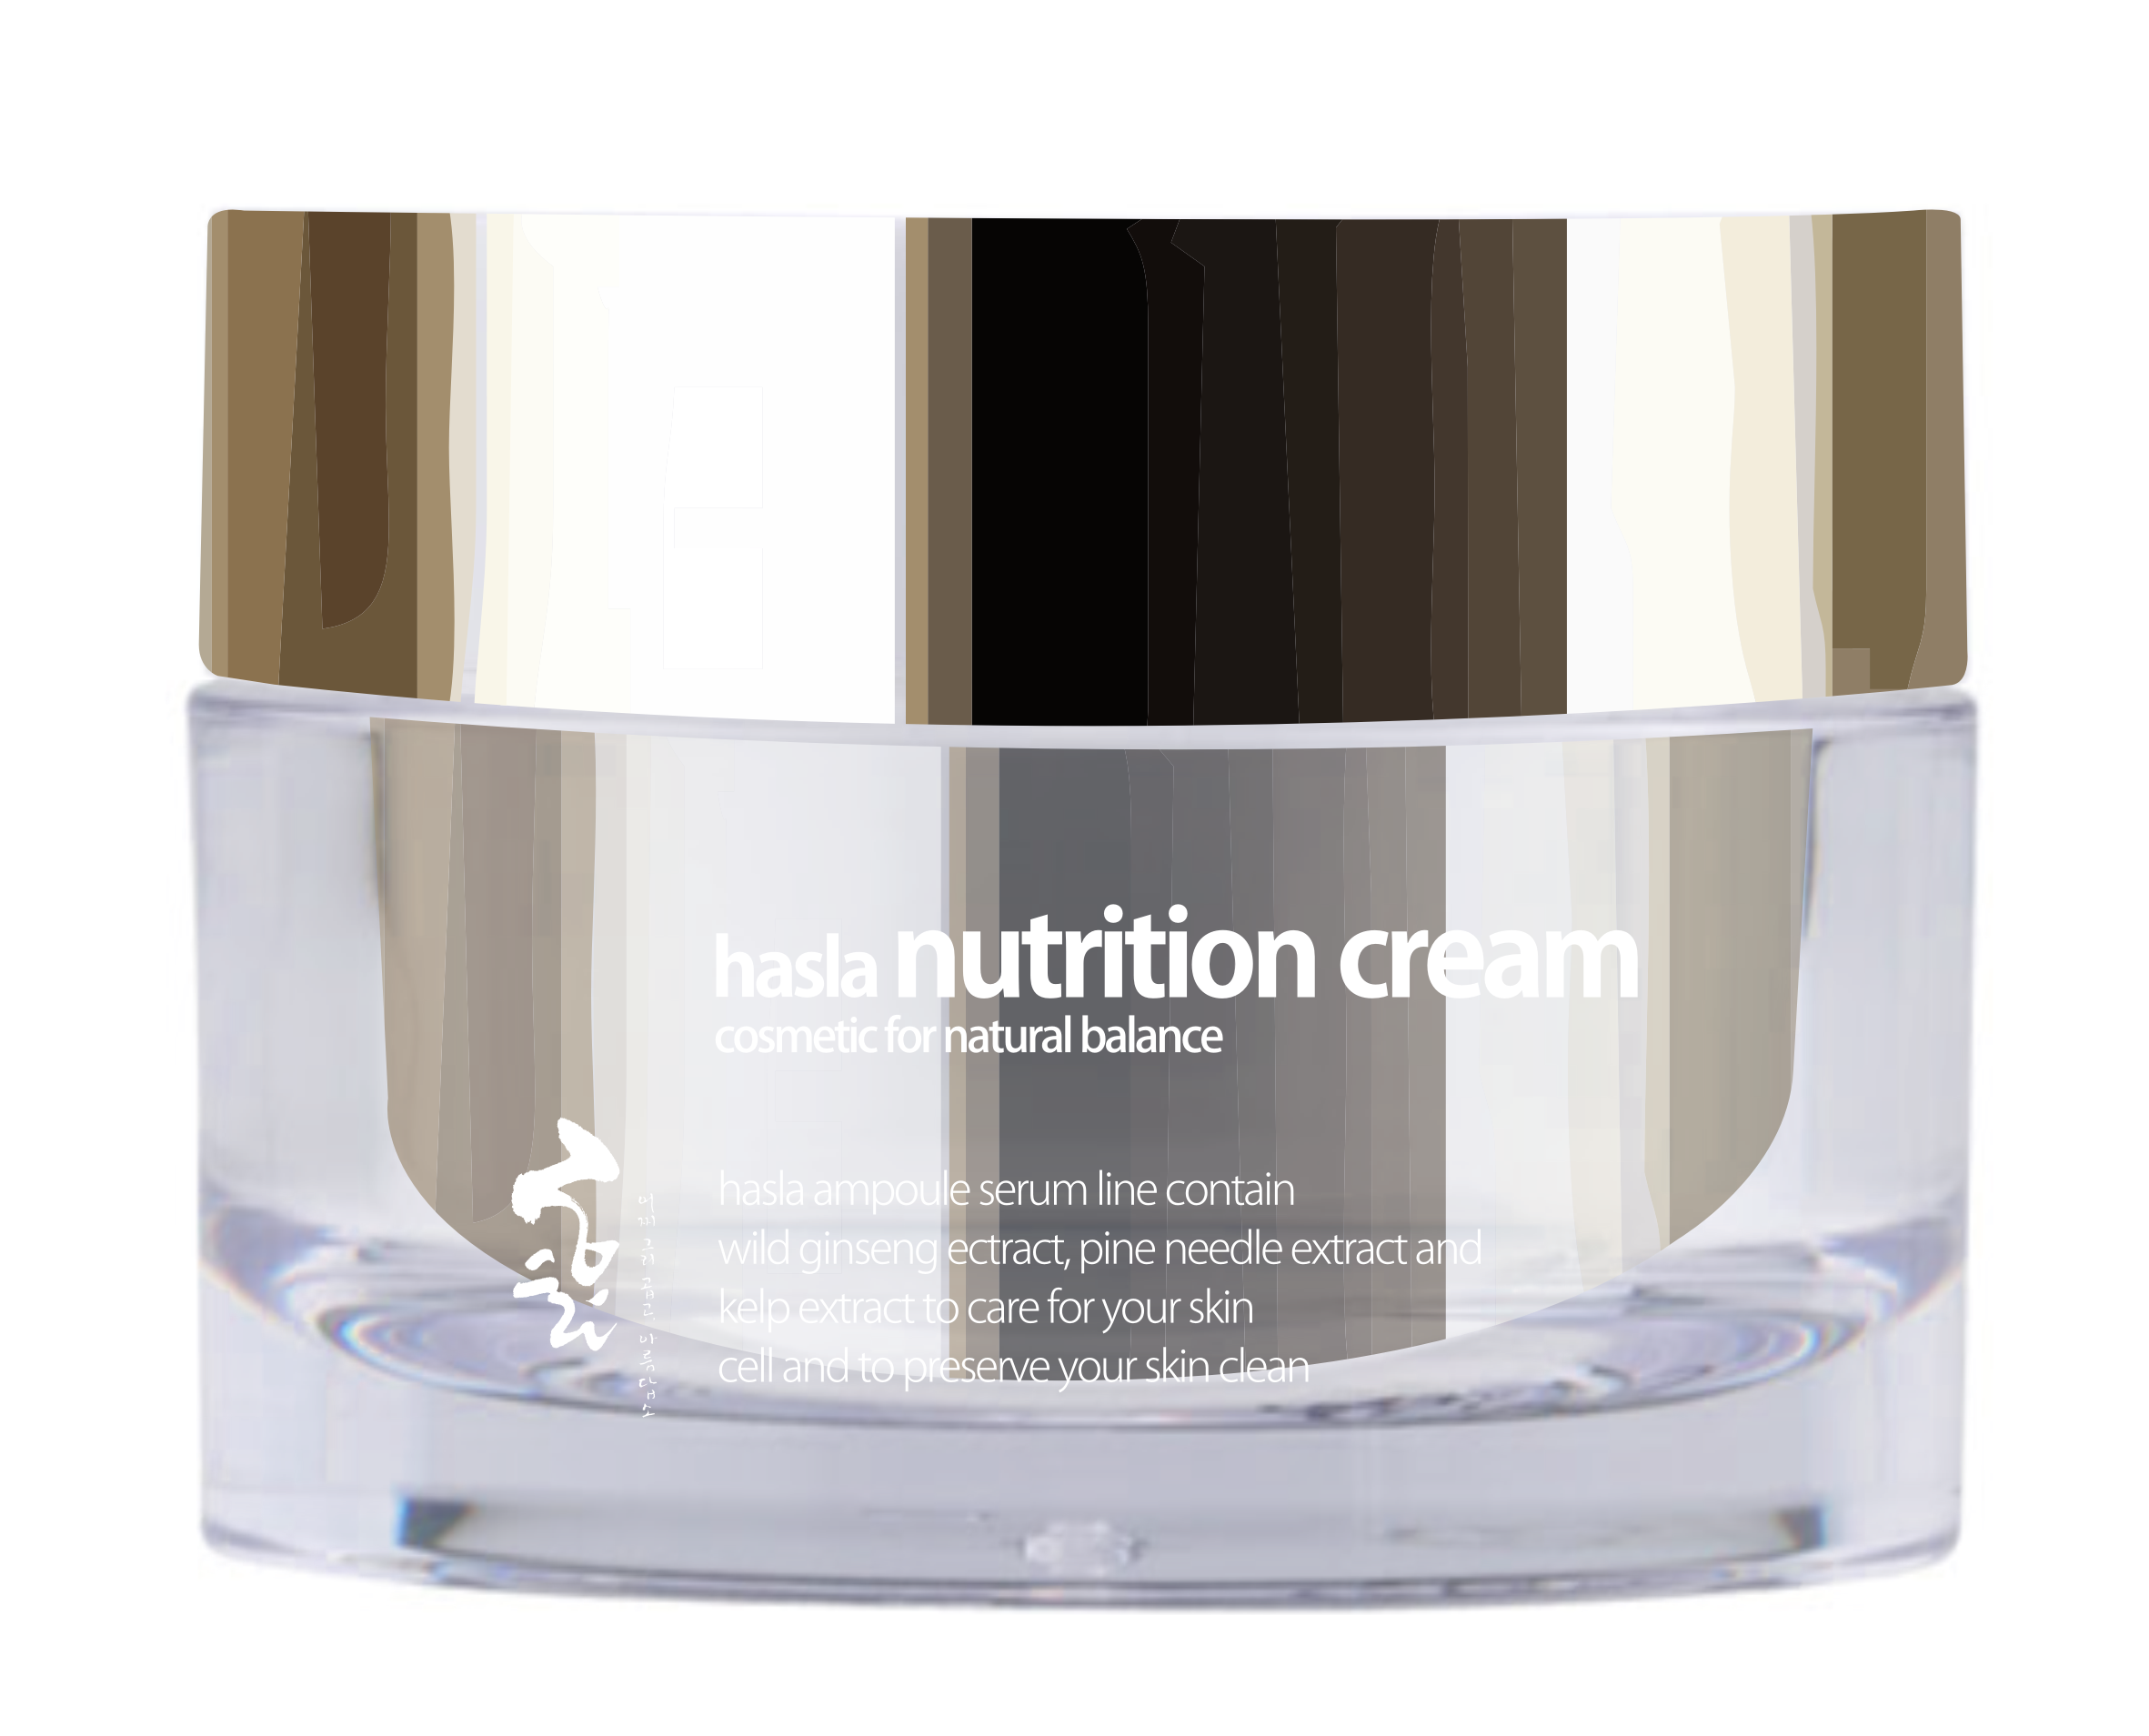 HASLA Nutrition Cream